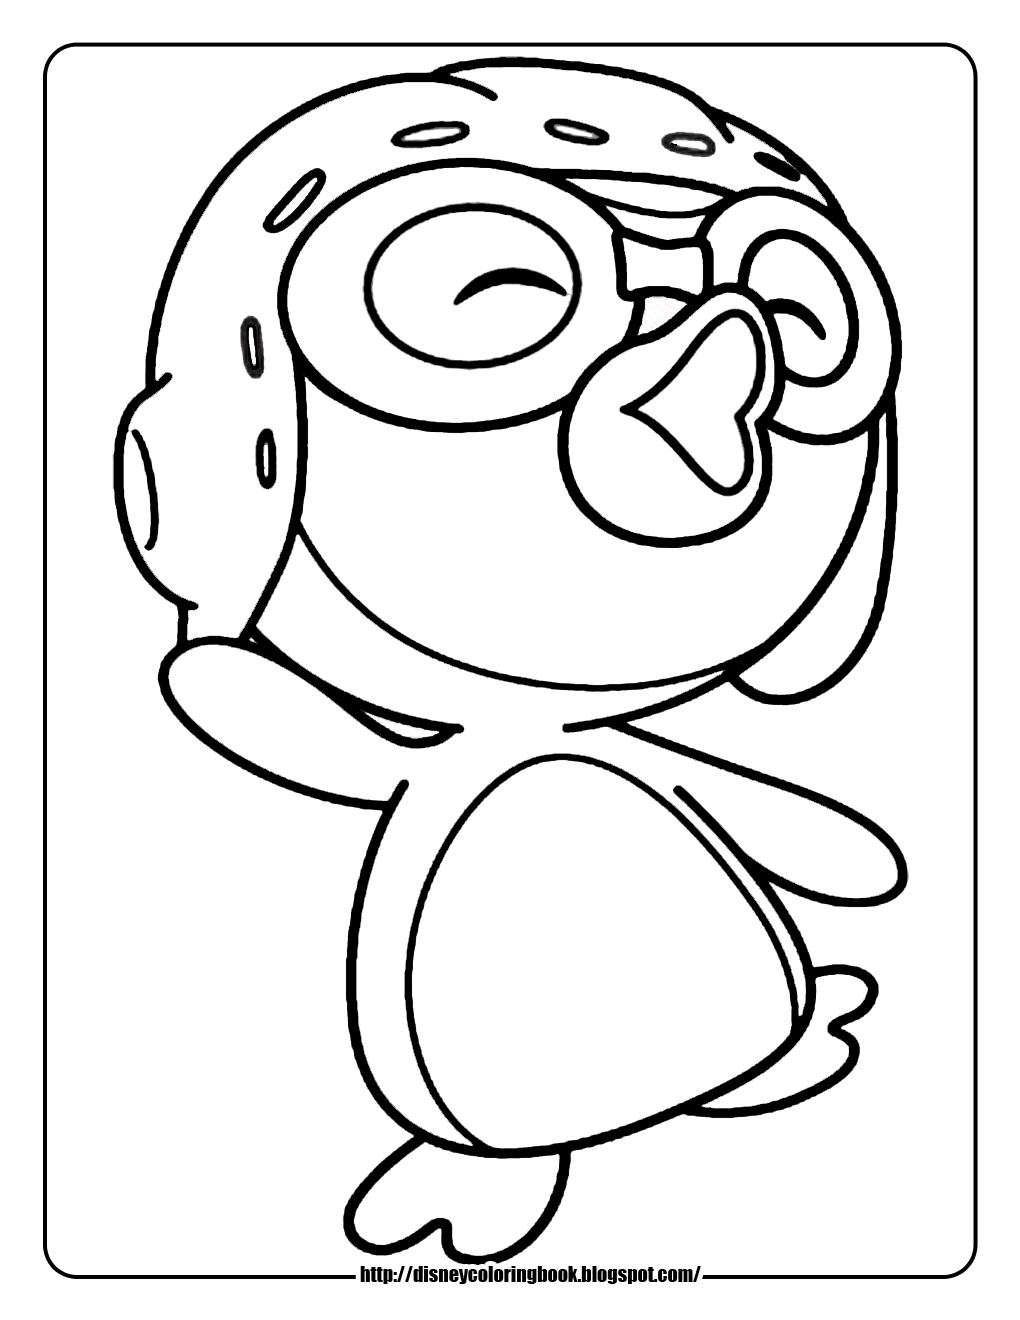 picture of penguin to color clipart panda free clipart images penguin picture of color to